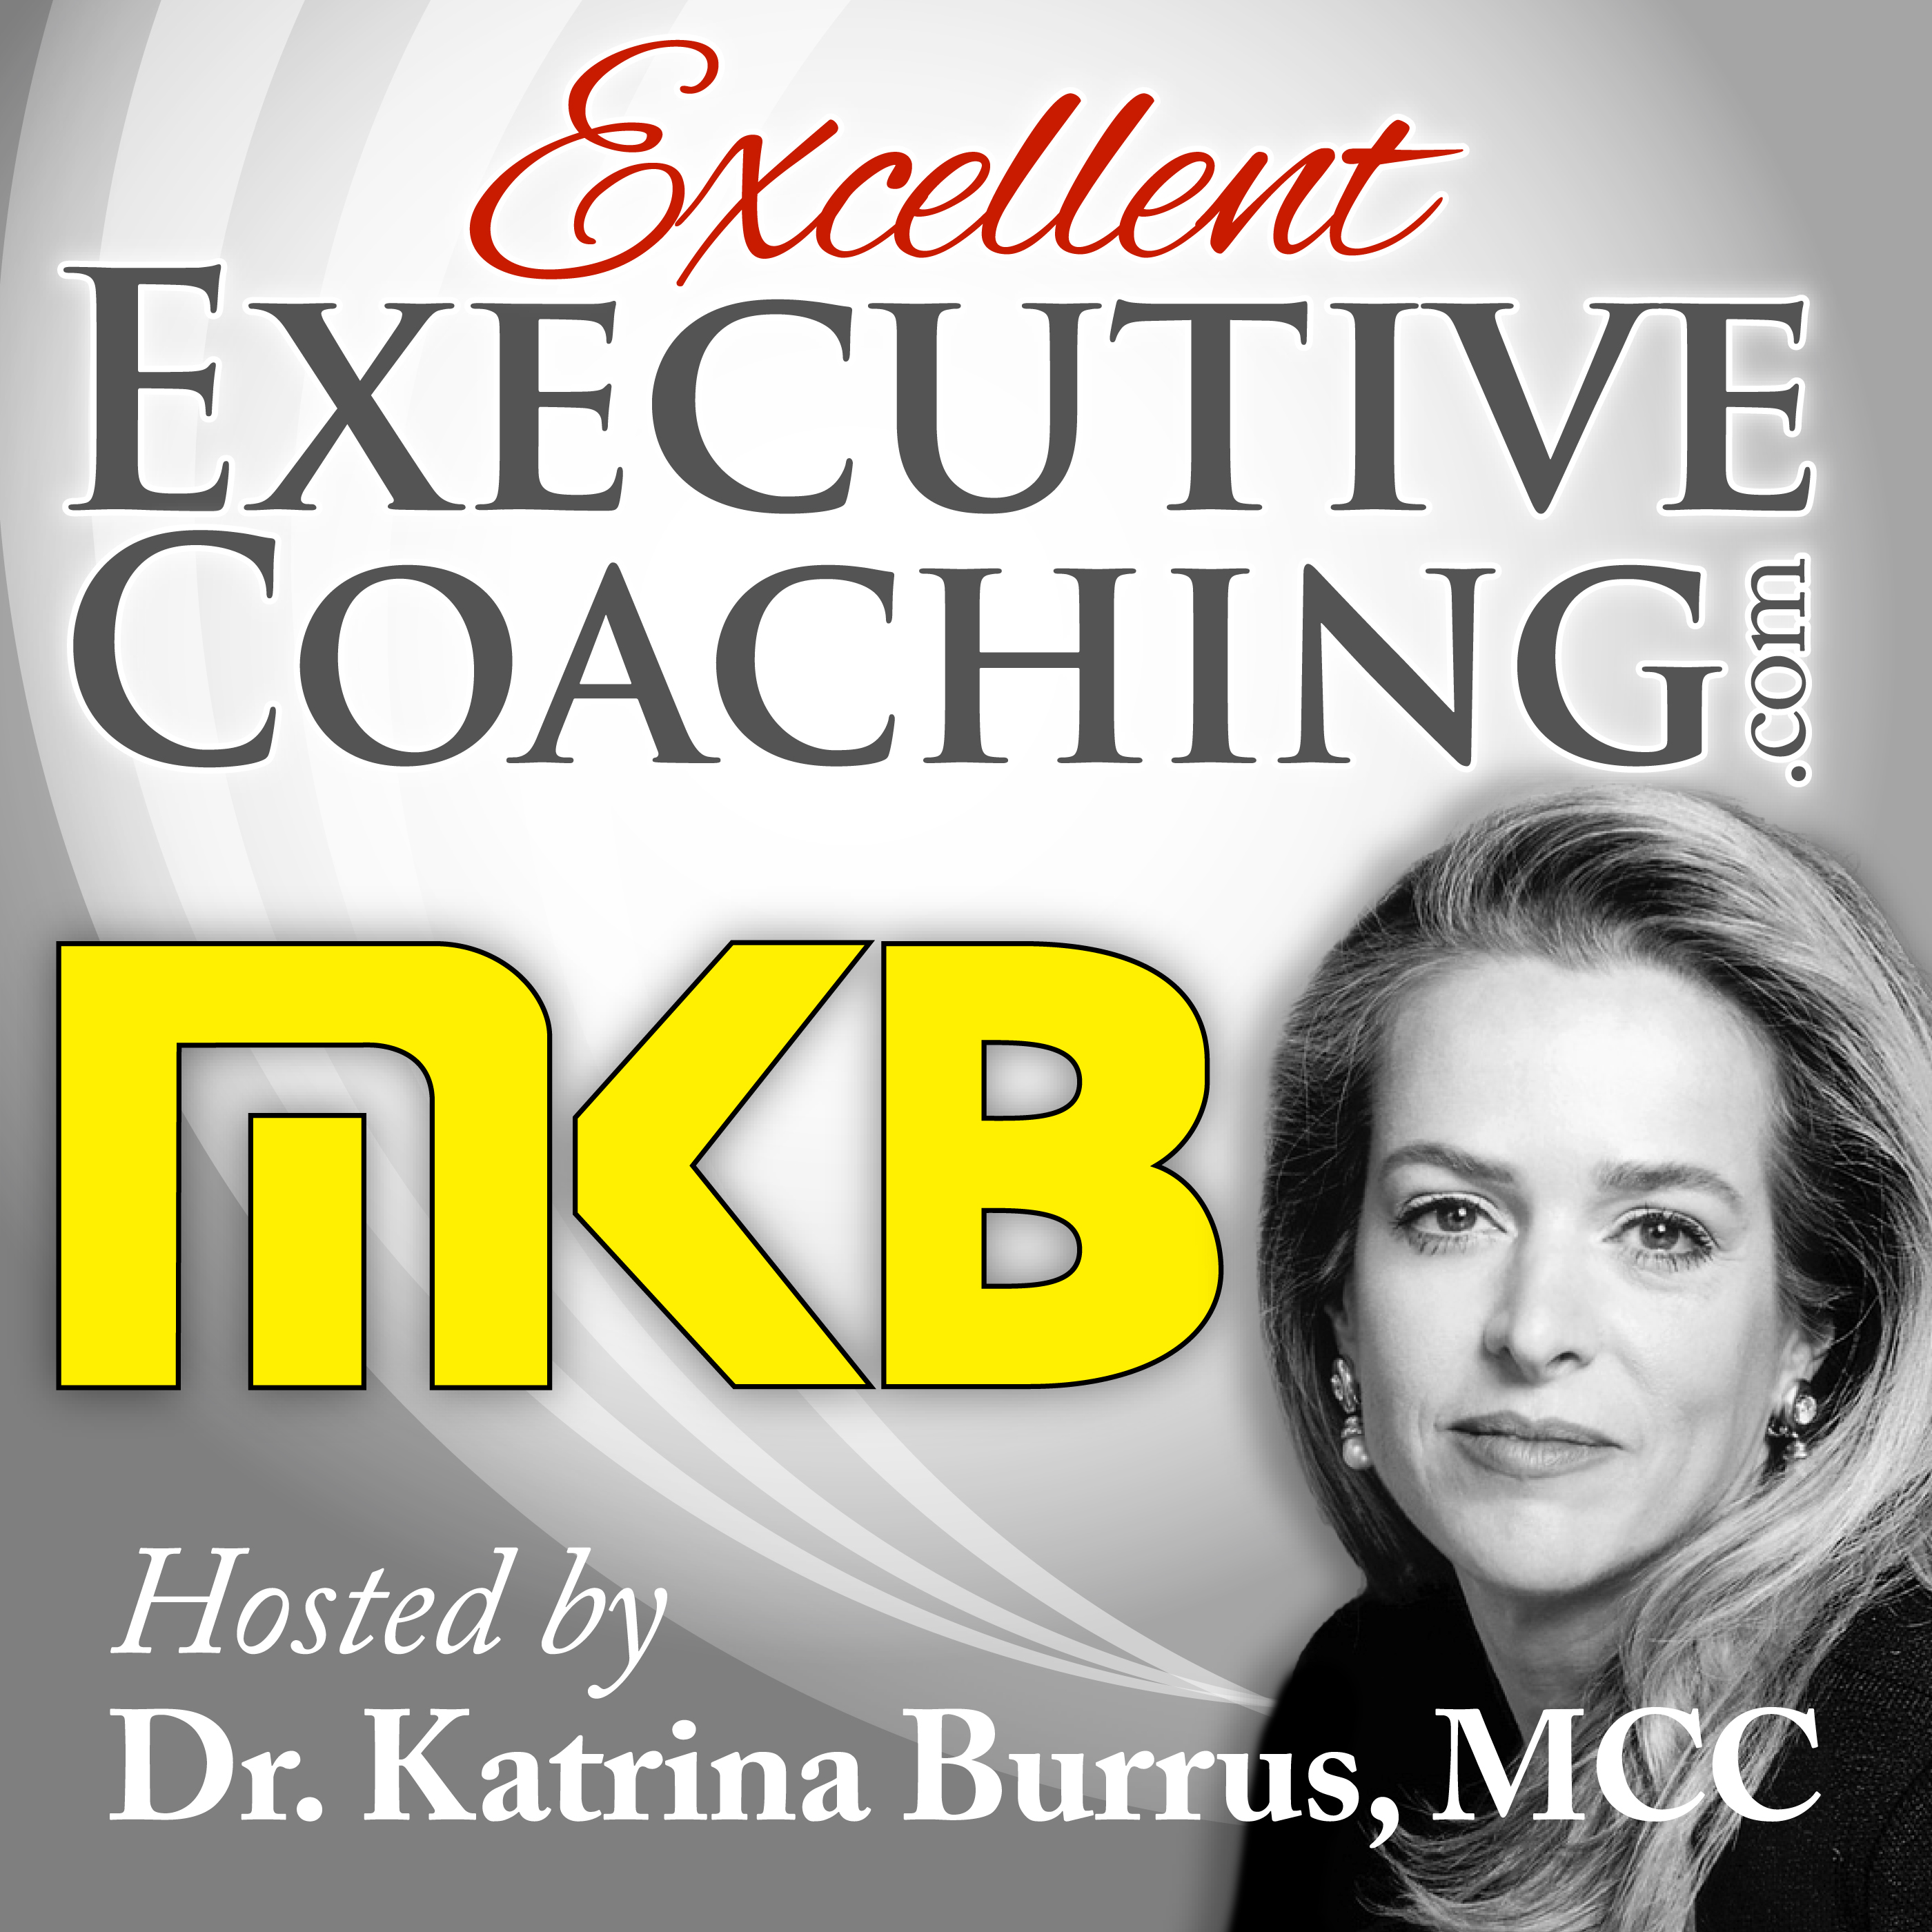 Excellent Executive Coaching: Bringing Your Coaching One Step Closer to Excelling show art